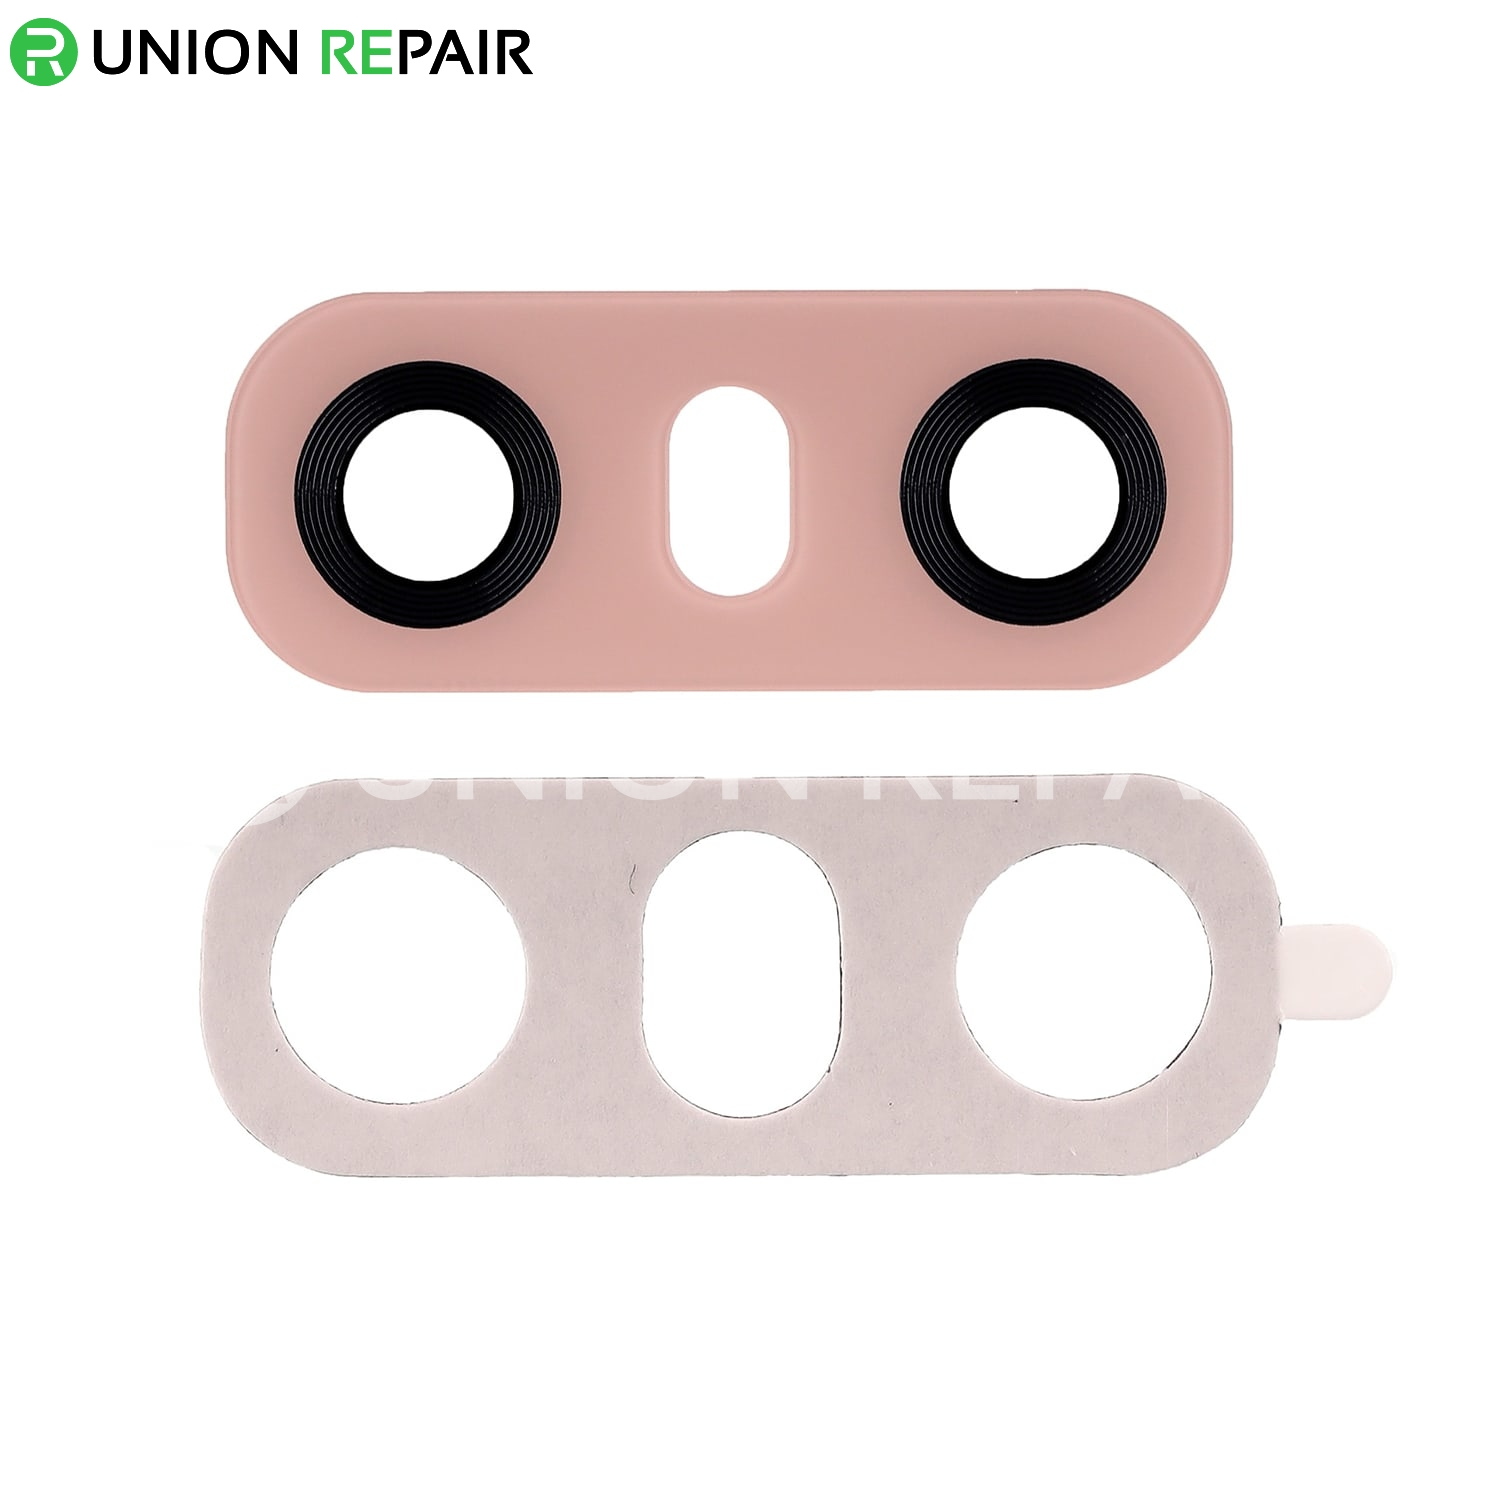 Replacement for LG G6 Rear Camera Holder with Lens - Rose Pink